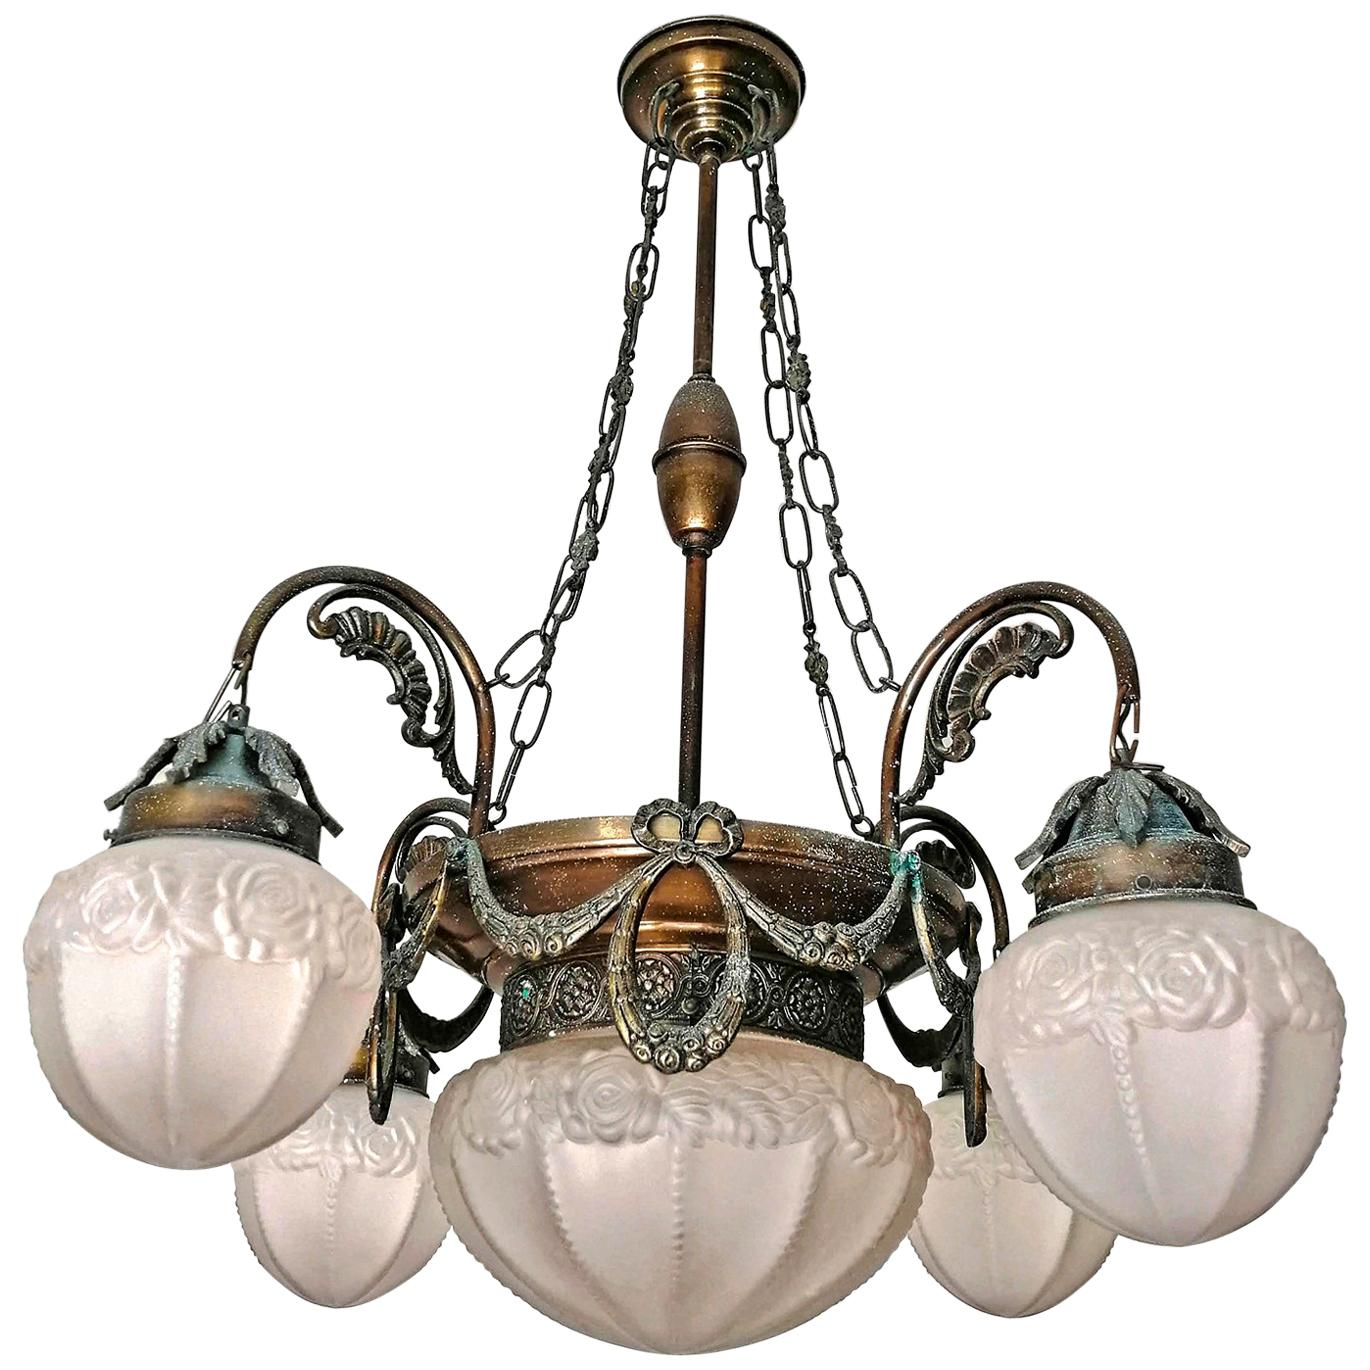 French Art Deco and Art Nouveau Brass and Frosted Glass 5-Light Chandelier